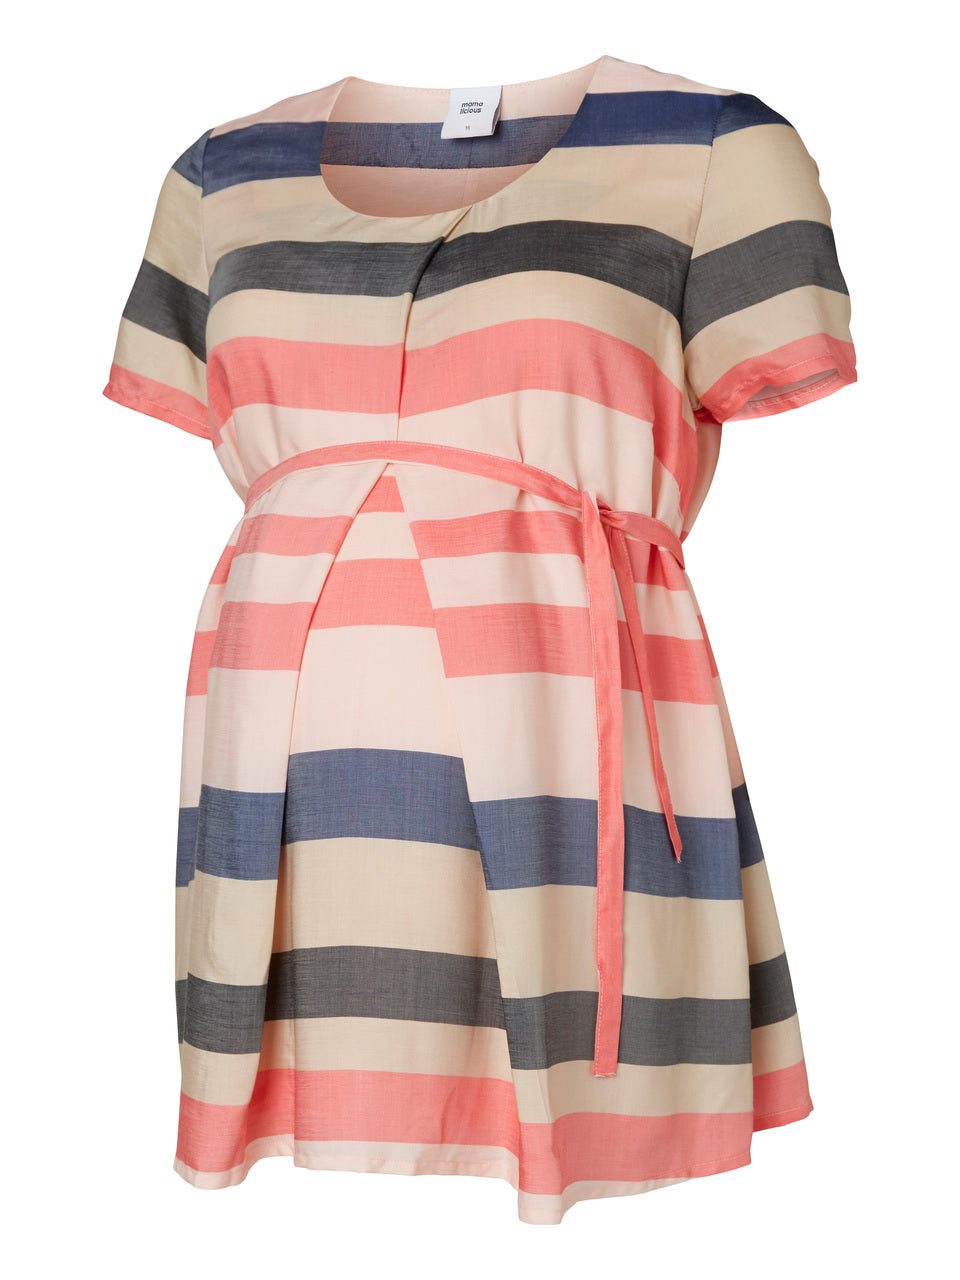 Mamalicious Peach Navy Stripe Maternity Top